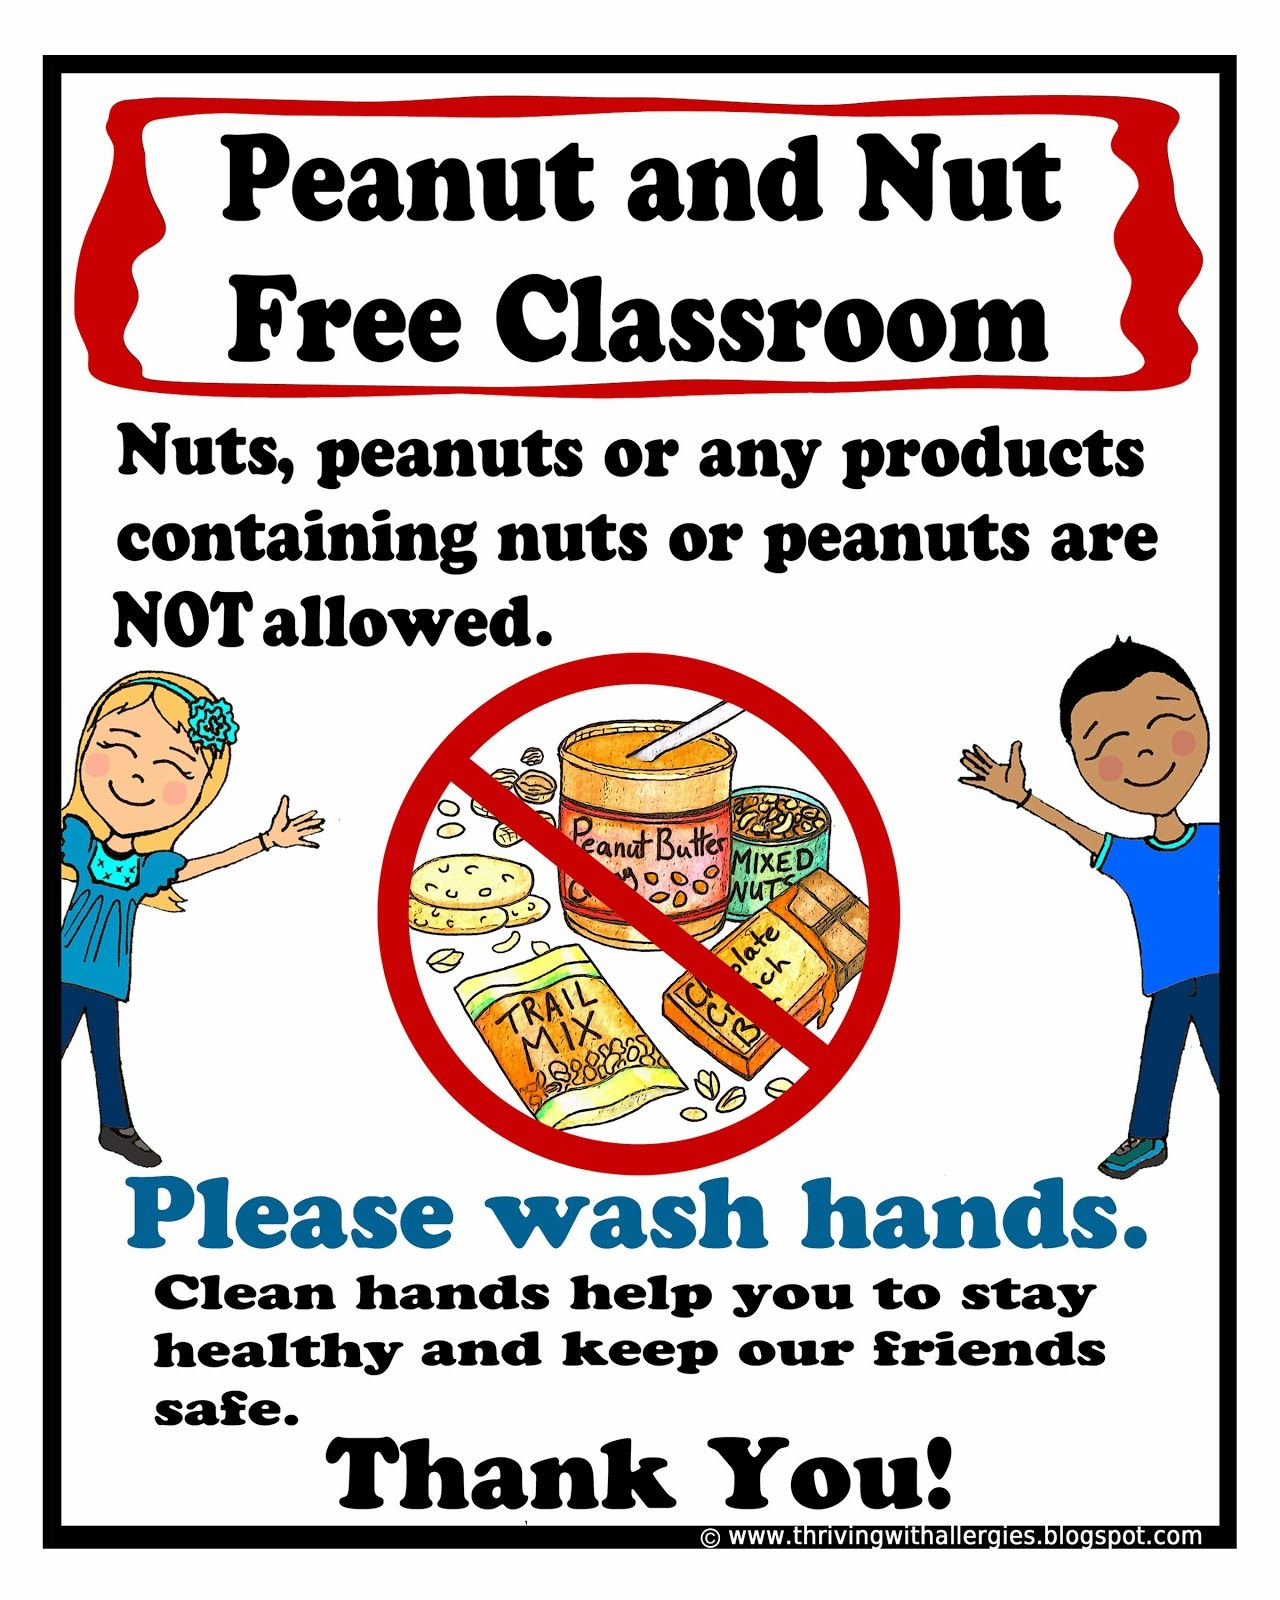 Peanut And Nut Free Classroom Poster. Free Printable Poster   Food - Printable Peanut Free Classroom Signs